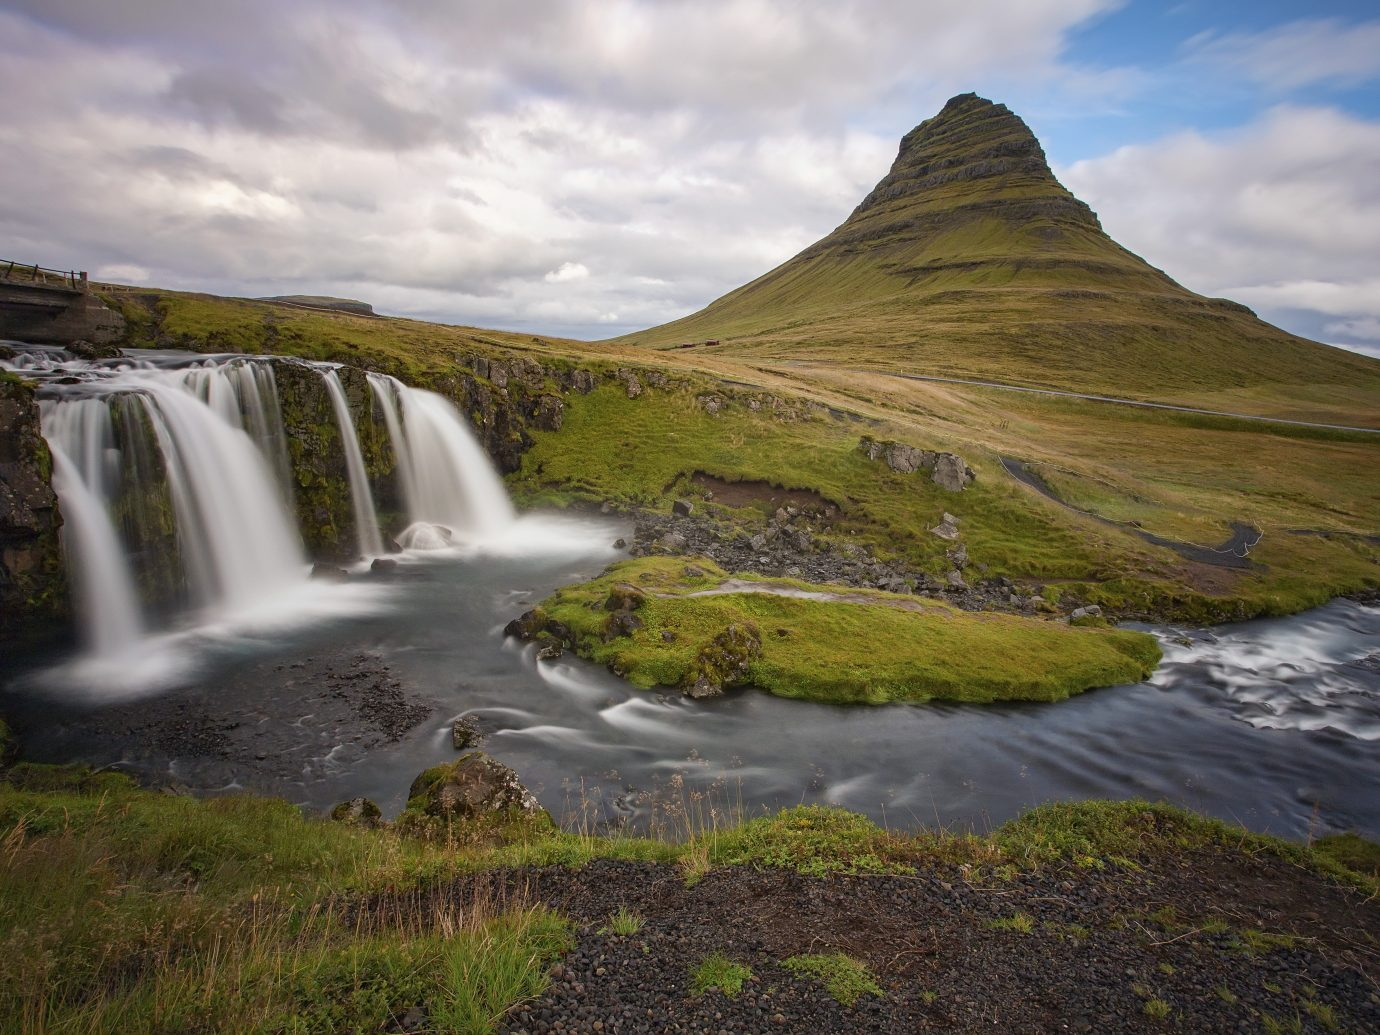 Kirkjufellsfoss mountain, located on the Snæfellsnes Peninsula of Iceland, with waterfalls in the foreground.